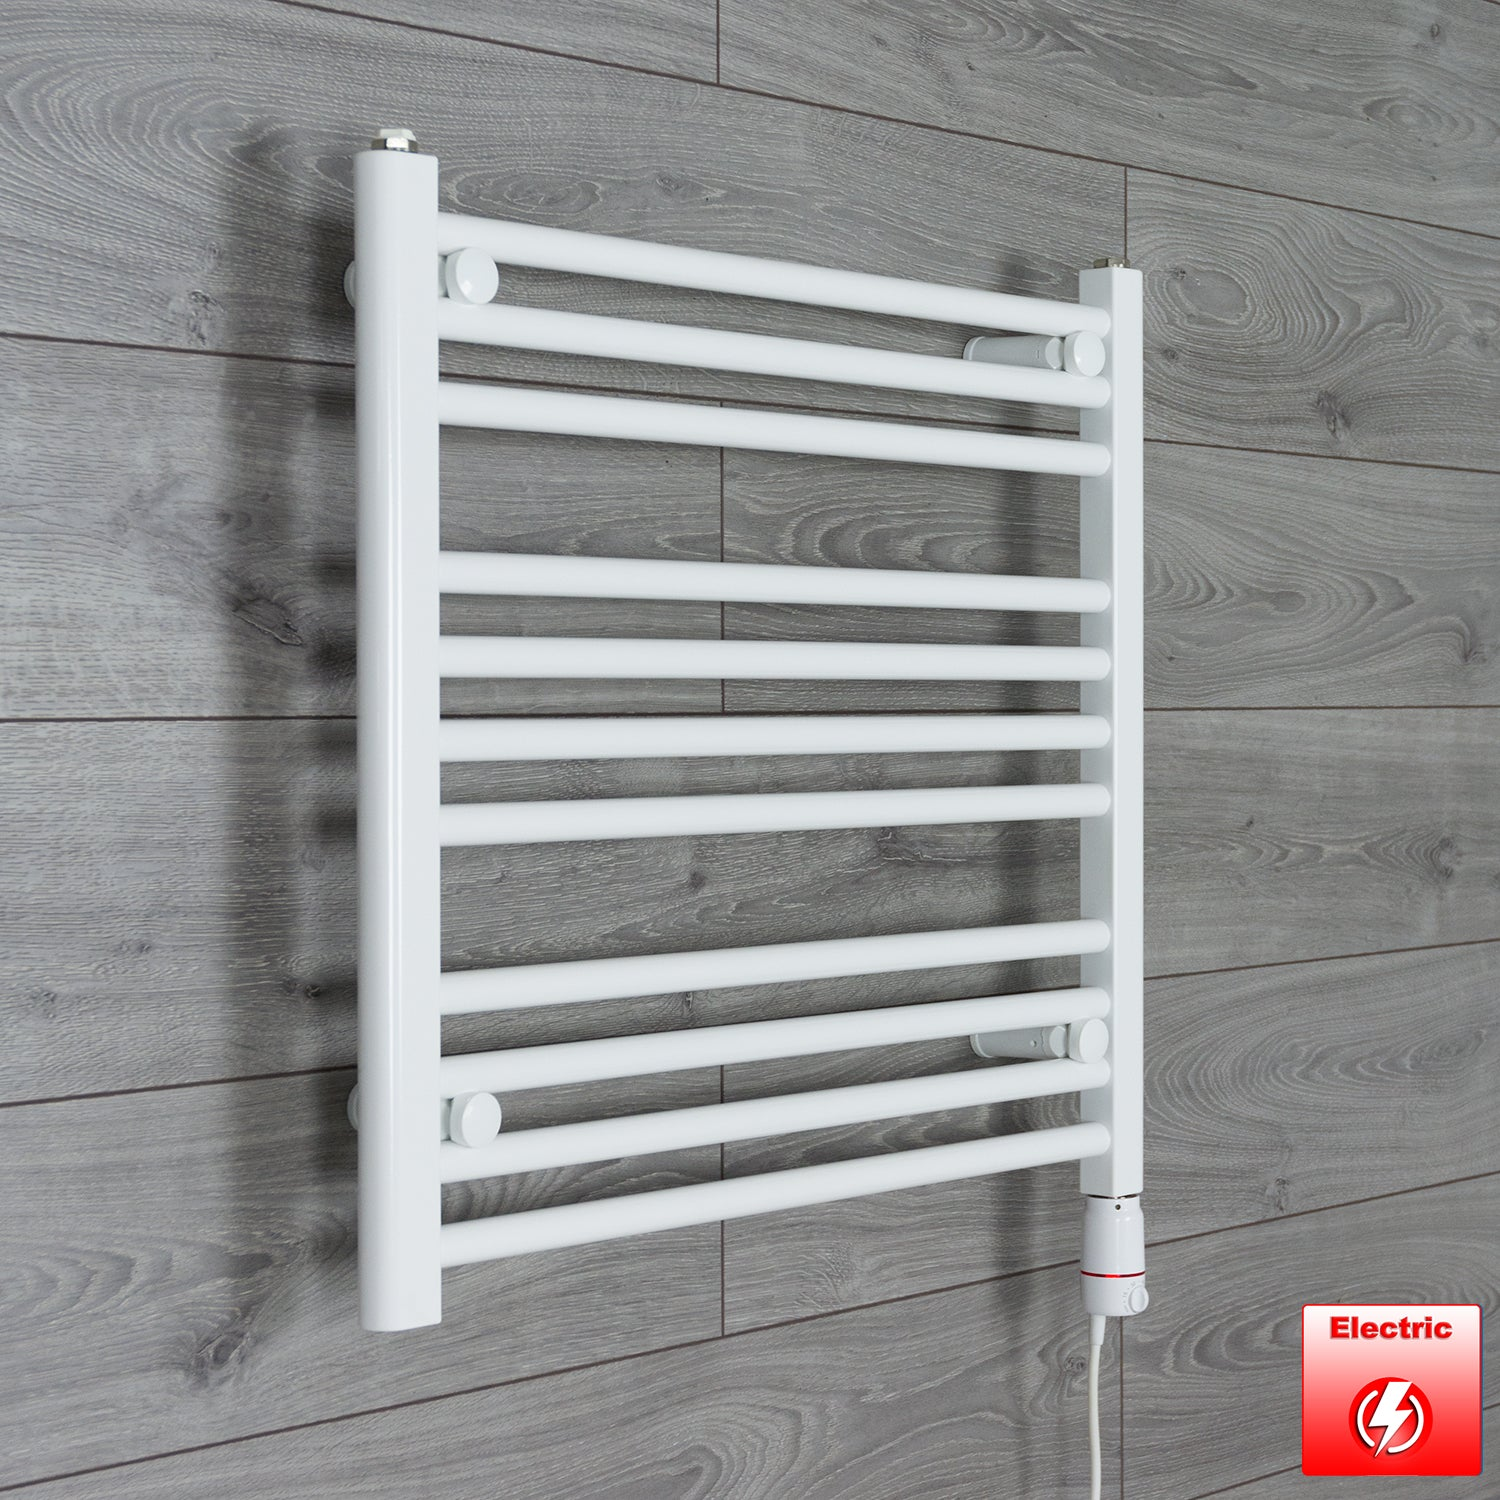 600mm Wide 600mm High Flat WHITE Pre-Filled Electric Heated Towel Rail Radiator HTR,GT Thermostatic